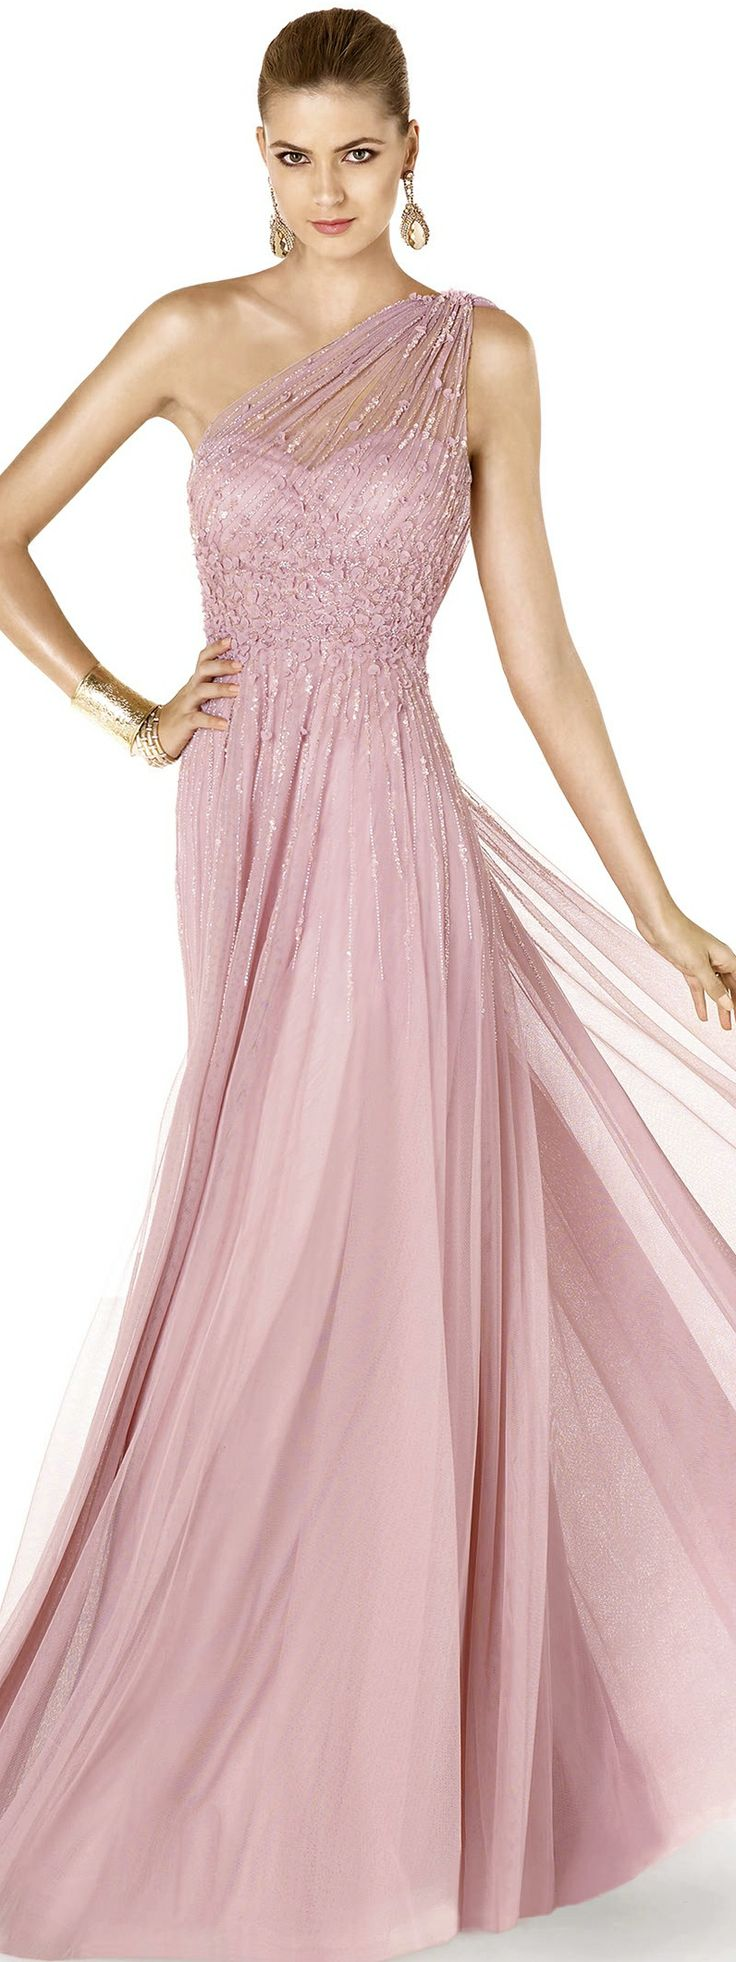 627 best Pink \'Princess\' Gowns images on Pinterest | Evening gowns ...